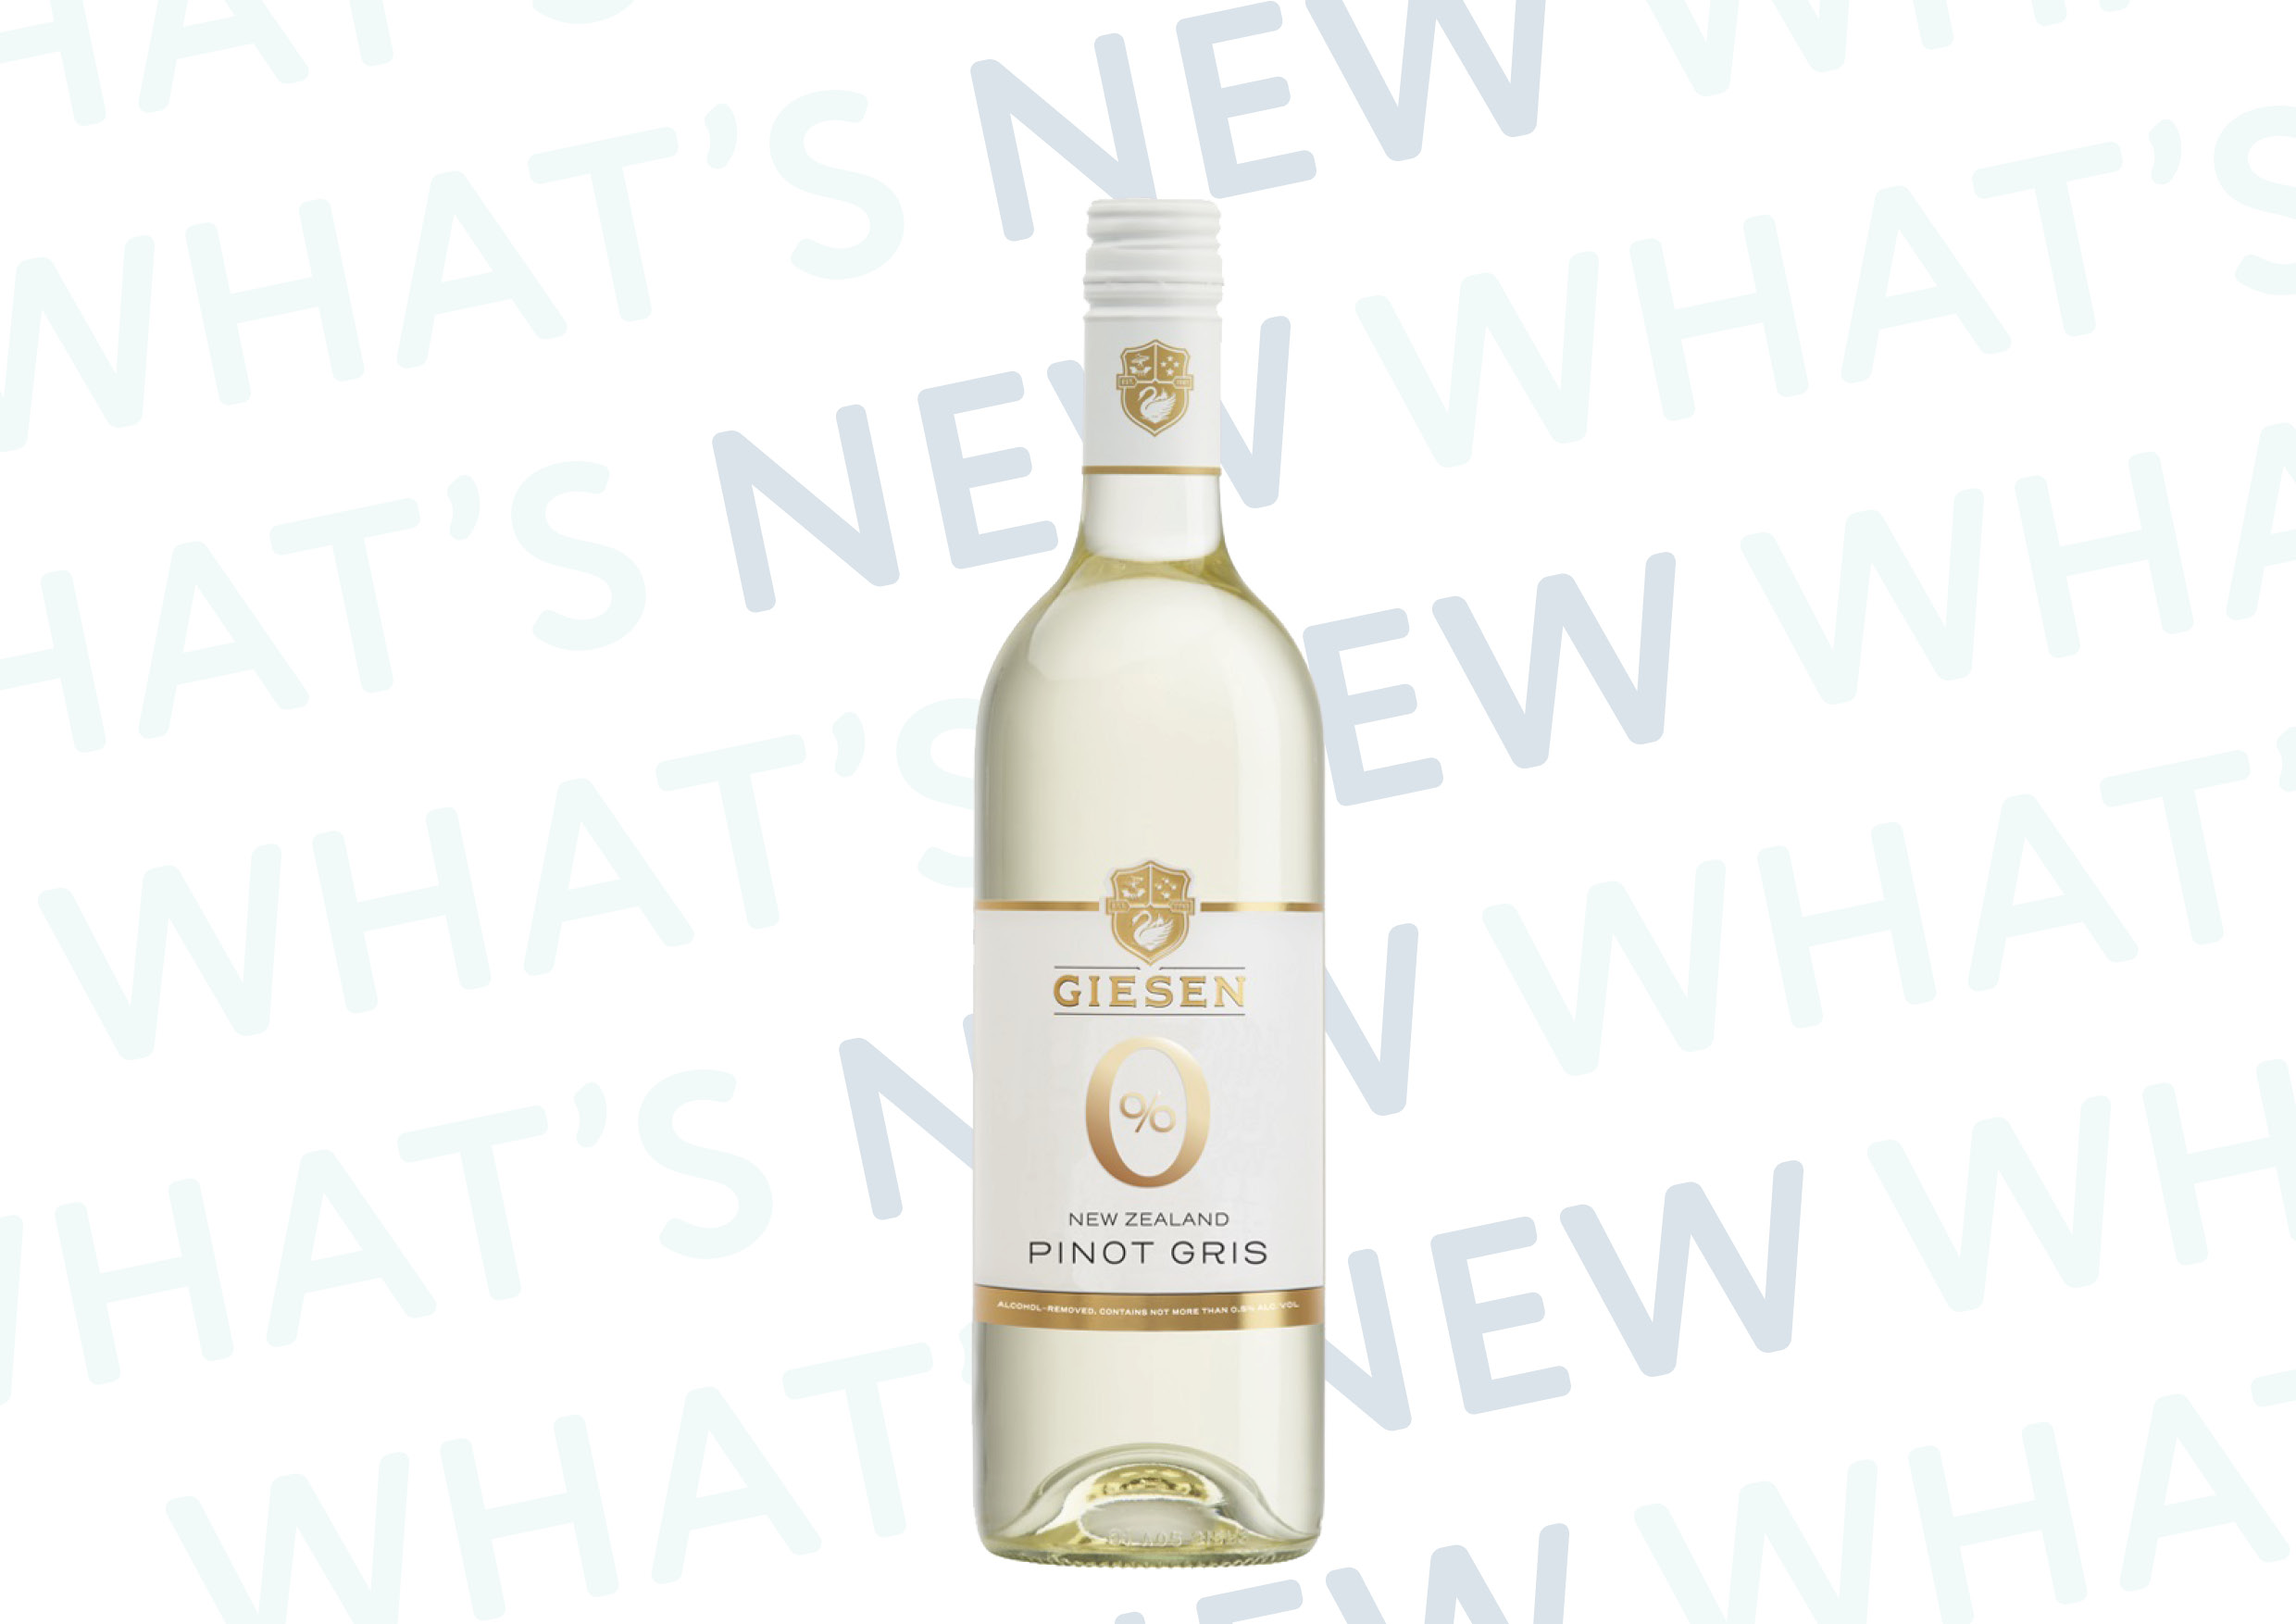 Second Alcohol-Free Wine from Giesen